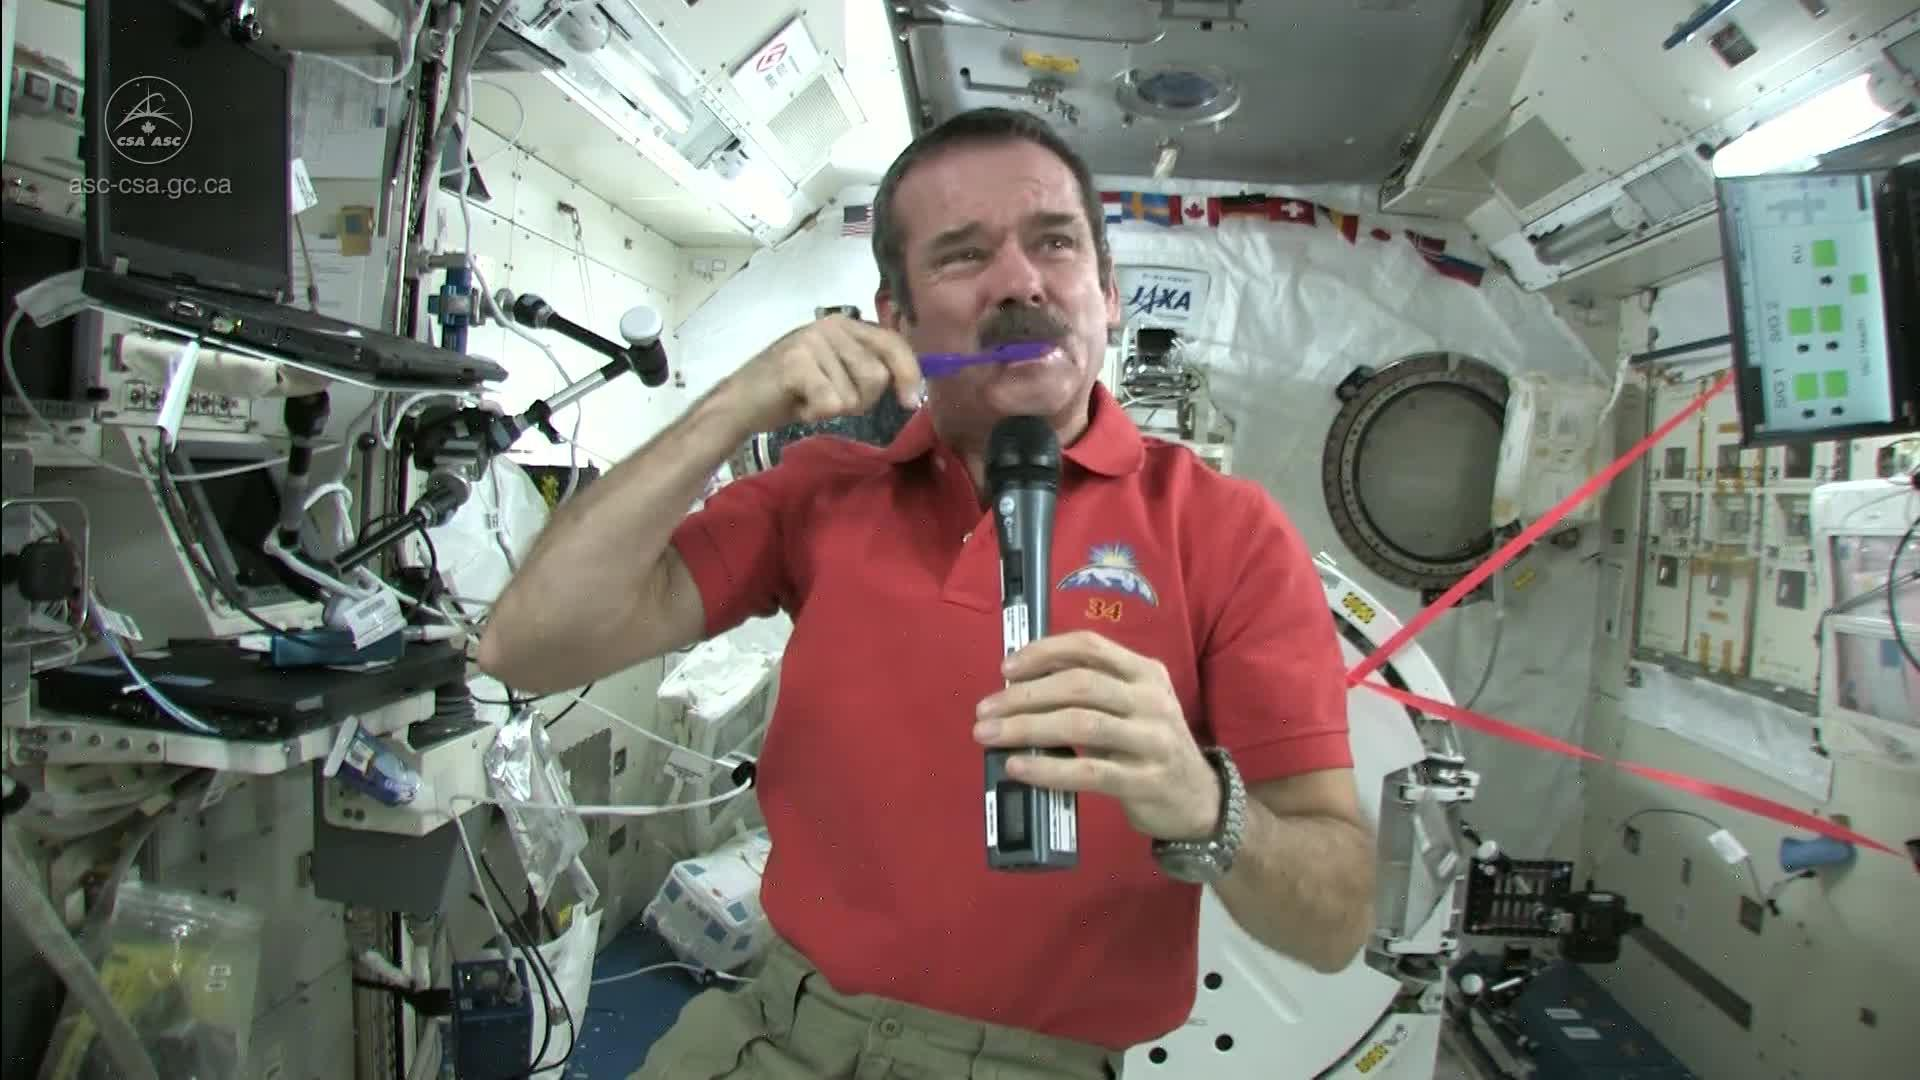 How astronauts use the bathroom - How Astronauts Use The Bathroom 11